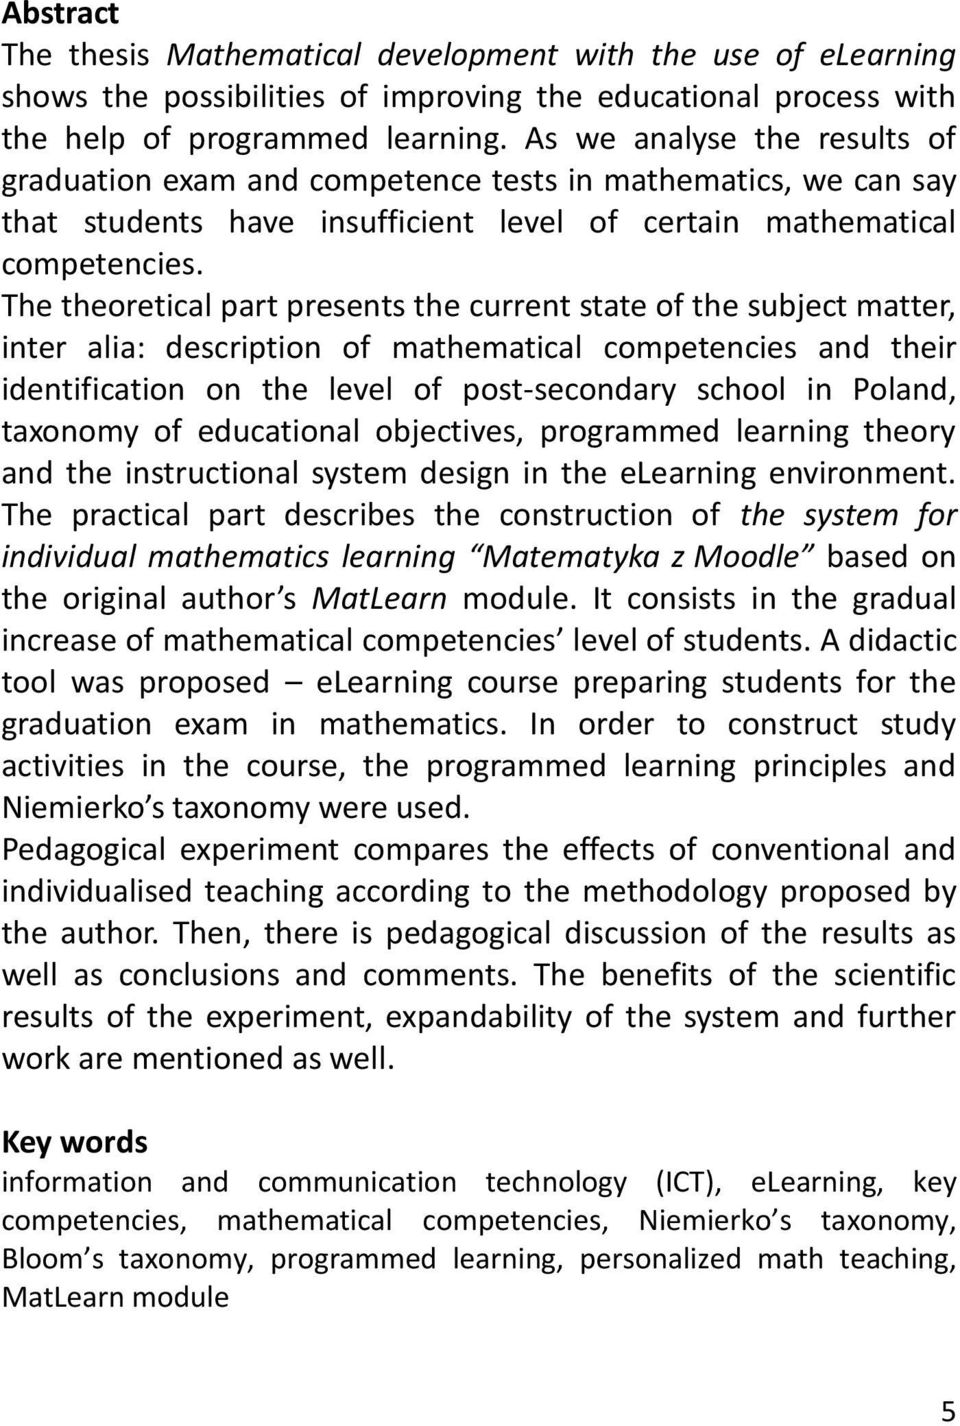 The theoretical part presents the current state of the subject matter, inter alia: description of mathematical competencies and their identification on the level of post-secondary school in Poland,